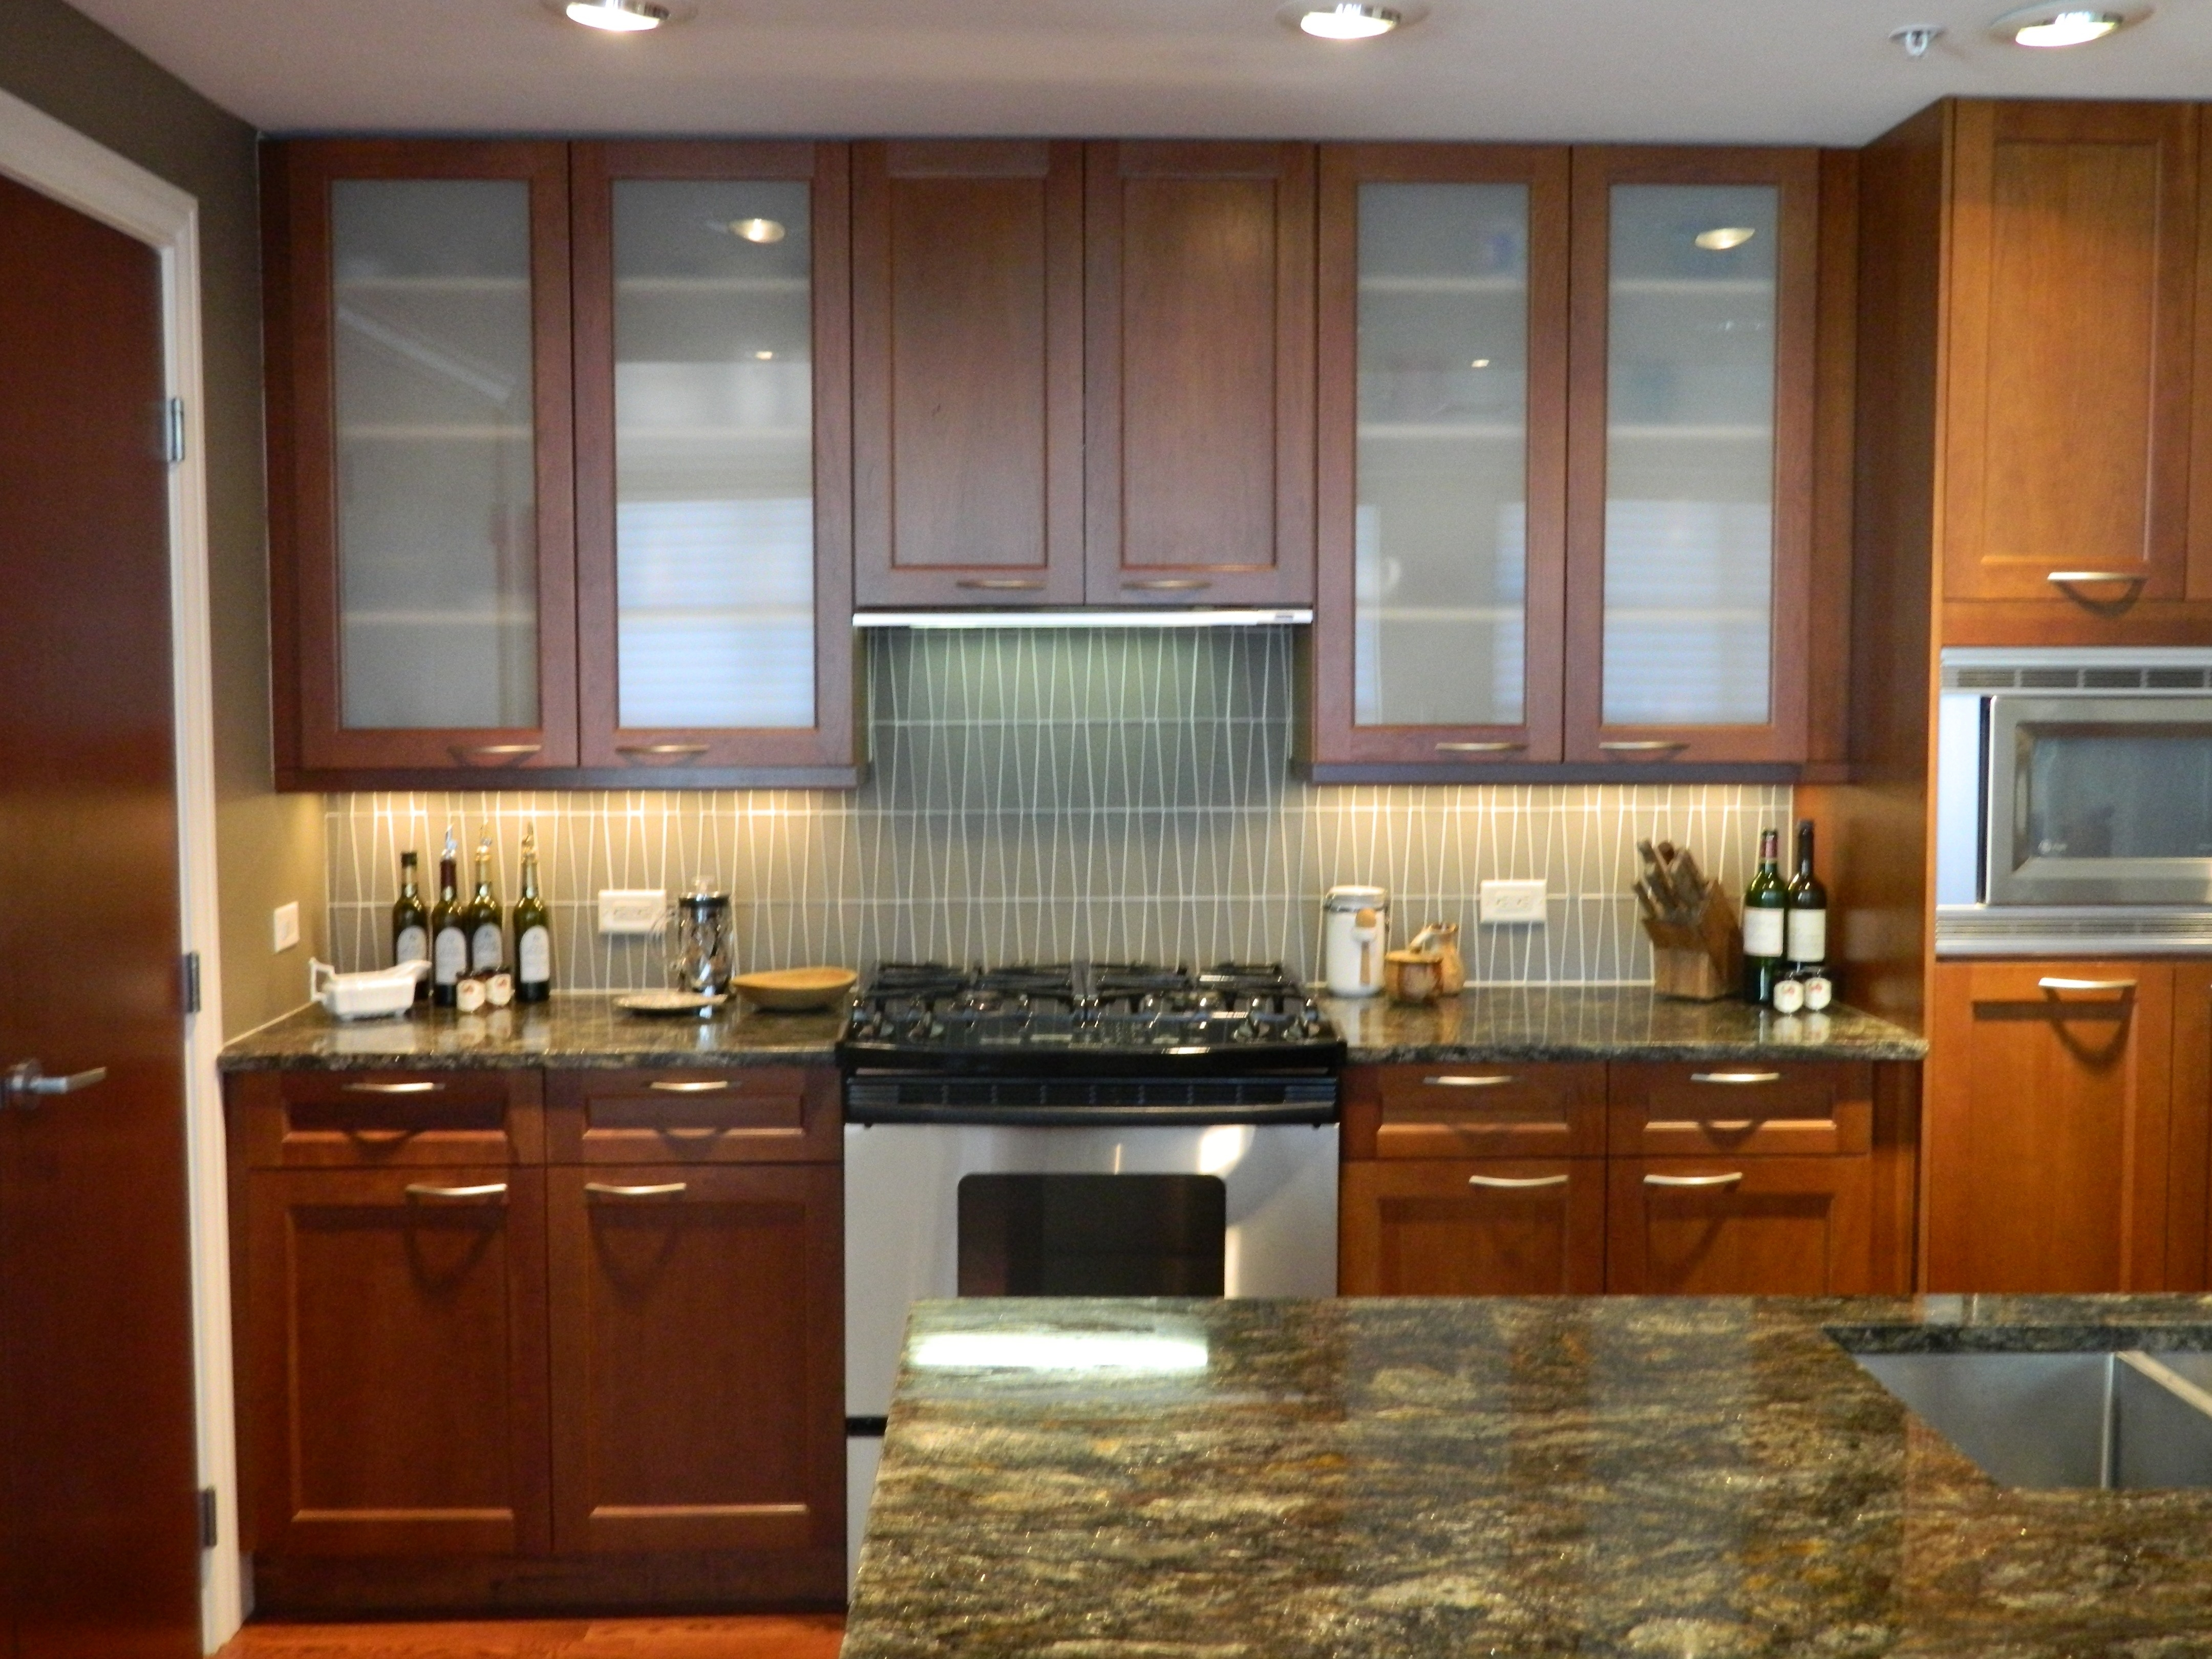 Upper Kitchen Cabinets With Glass Fronts